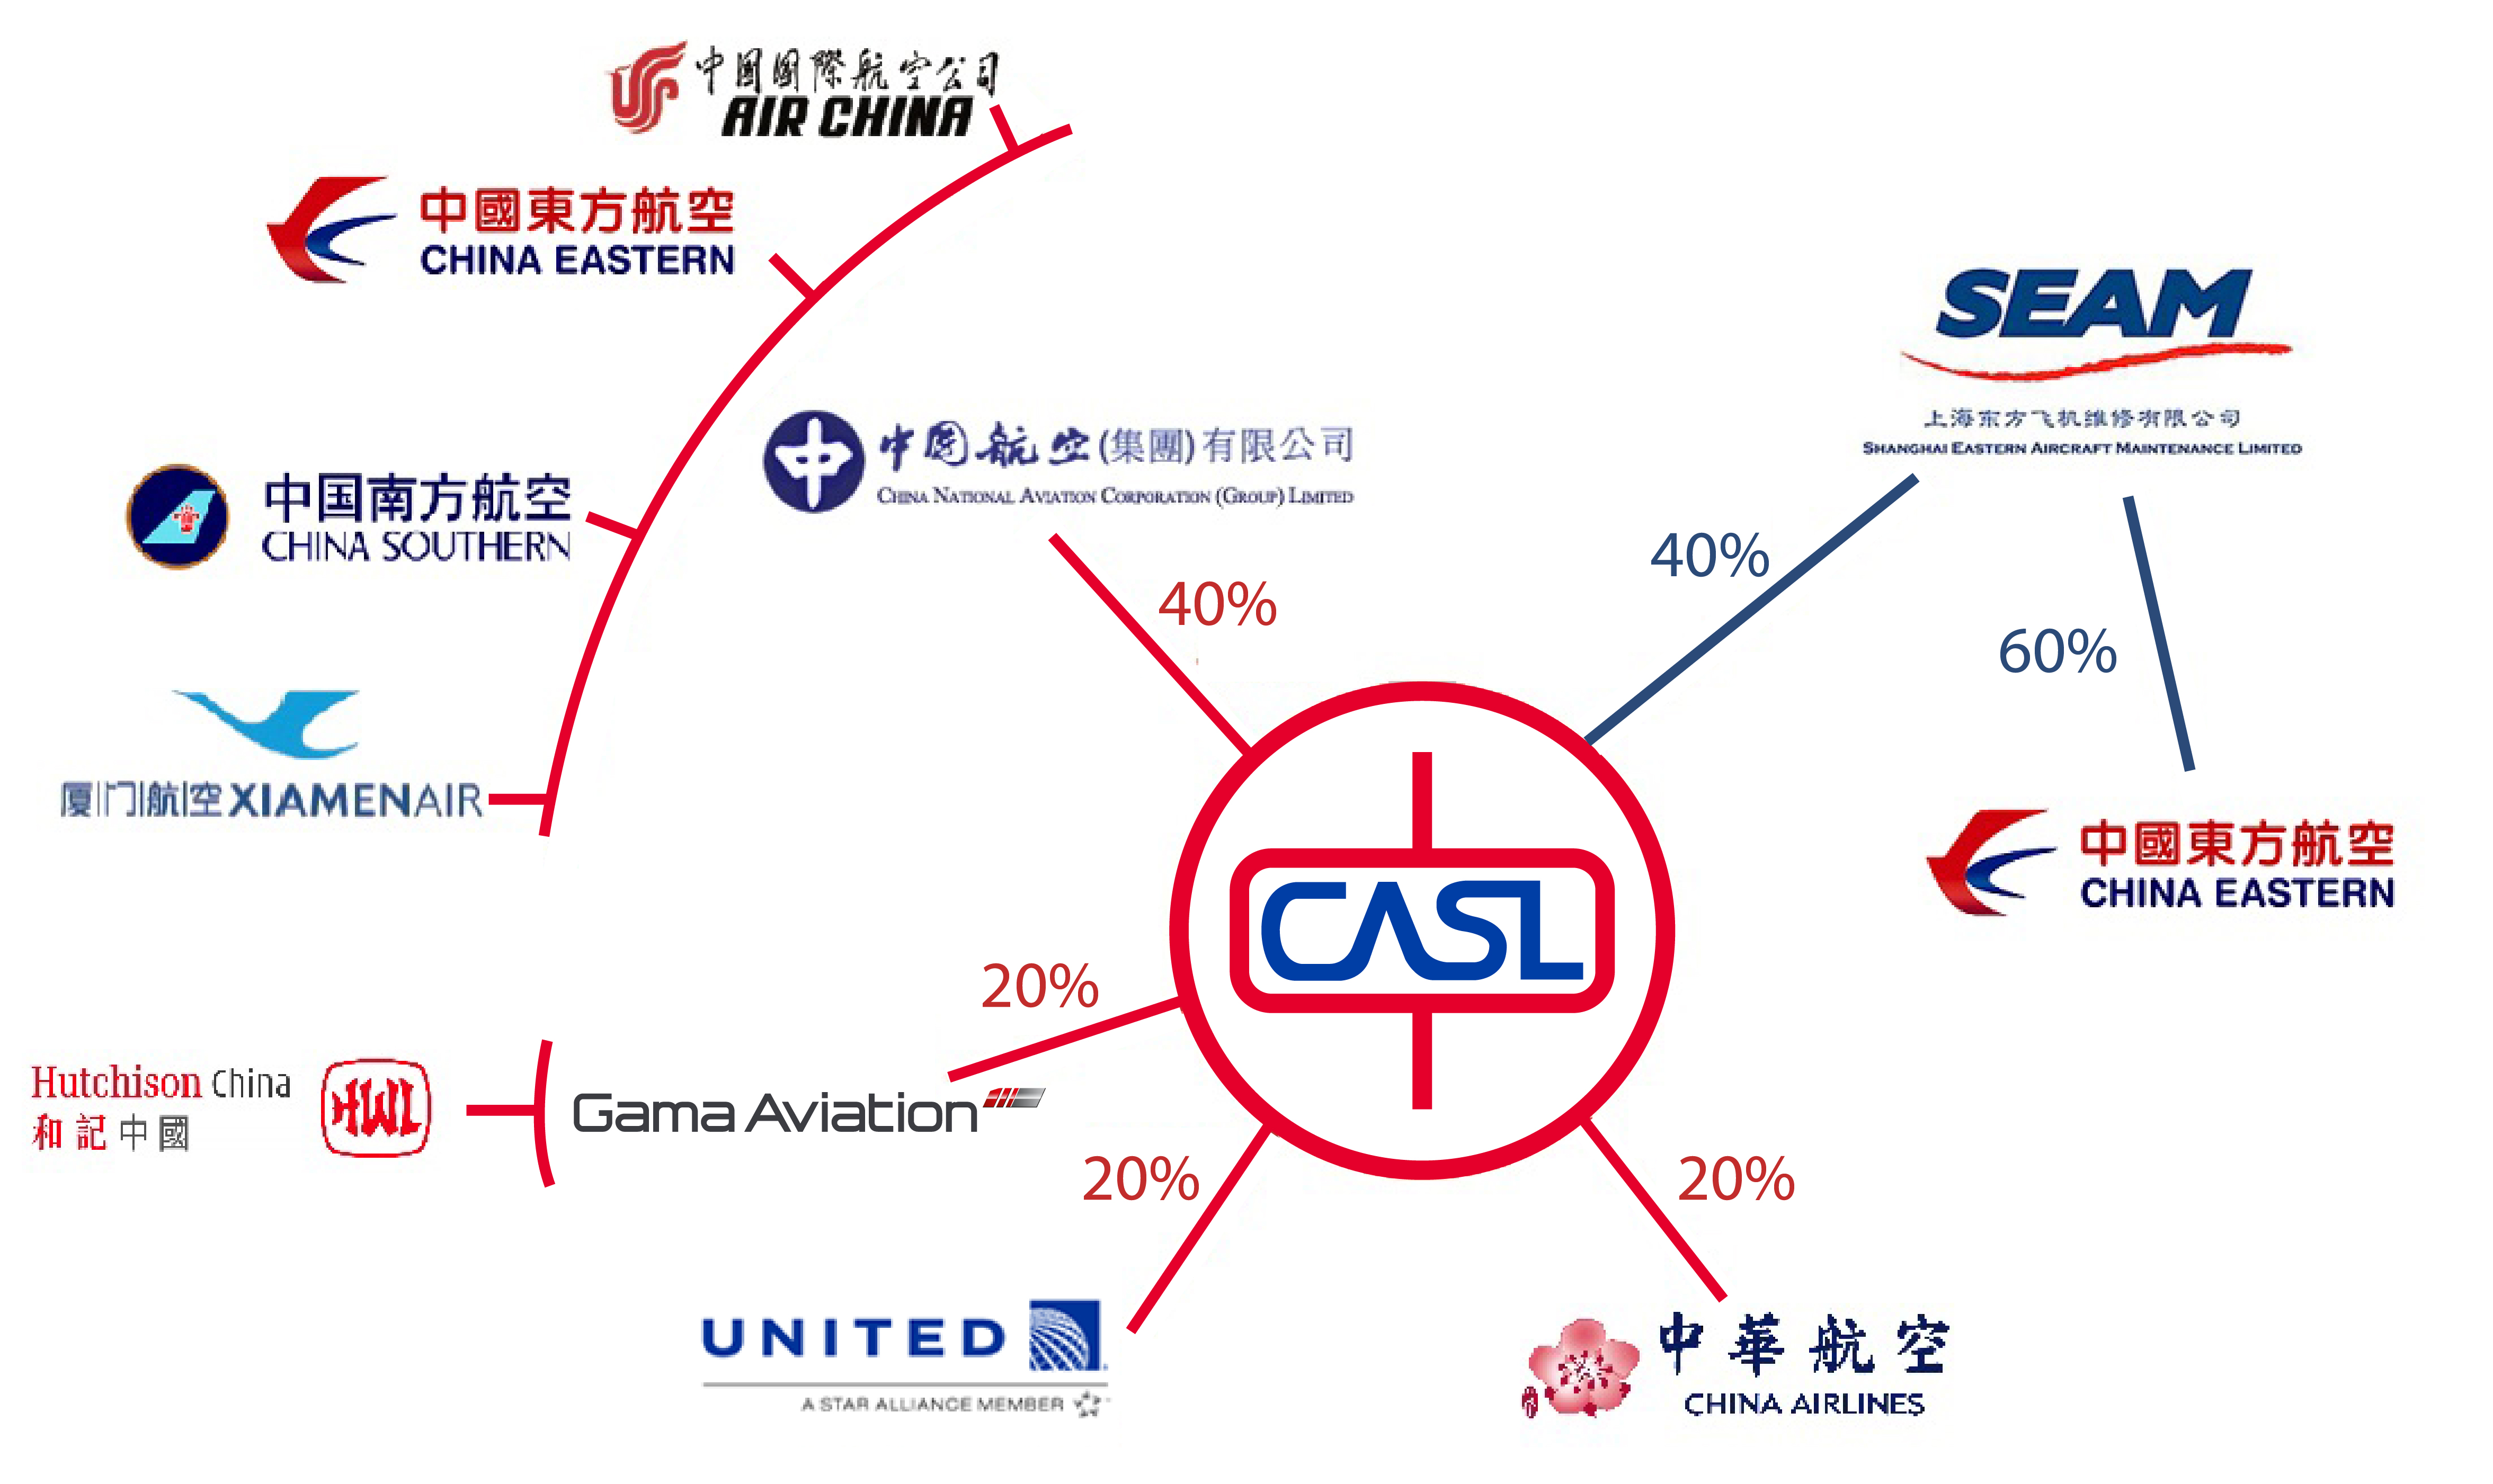 Air China Eastern Airlines Southern And Xiamen Have Representations In The Company Via 40 Shareholding Of